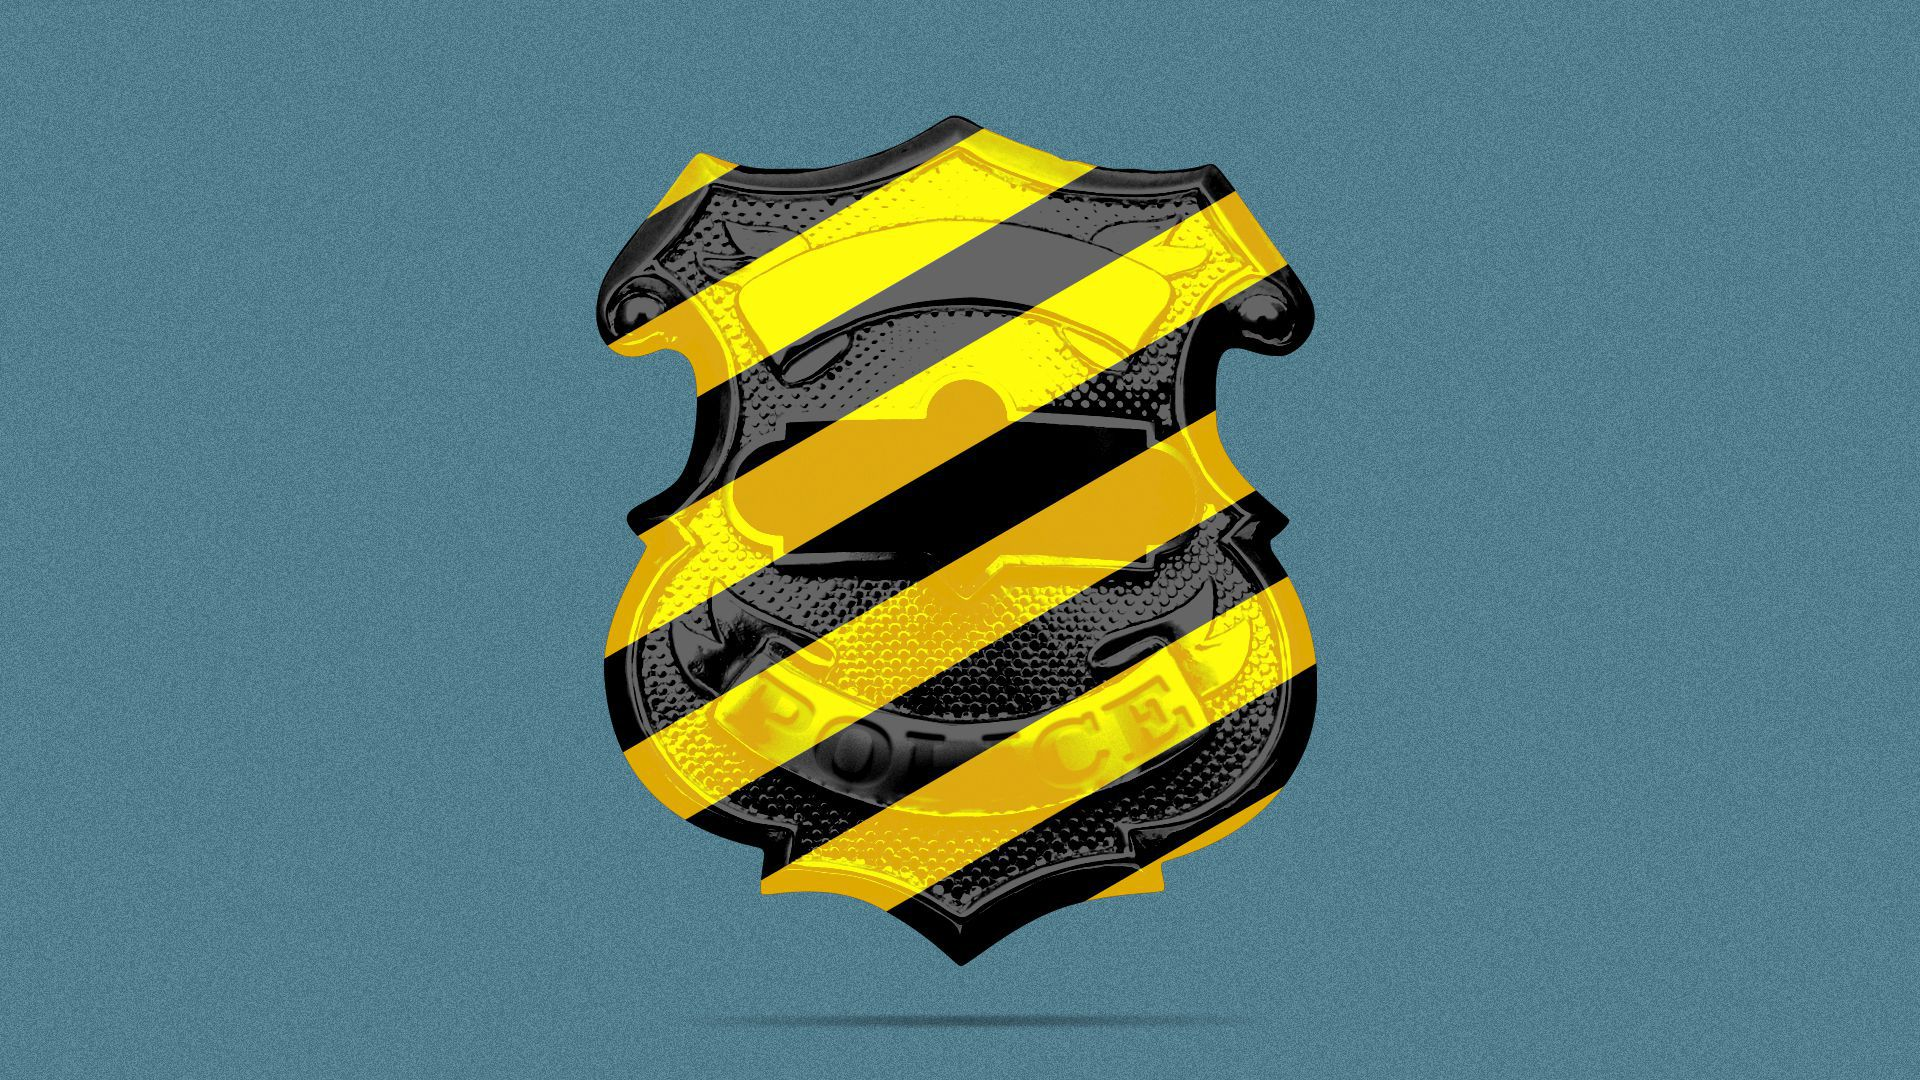 Illustration of a police badge, with yellow and black stripes overlaid on it.